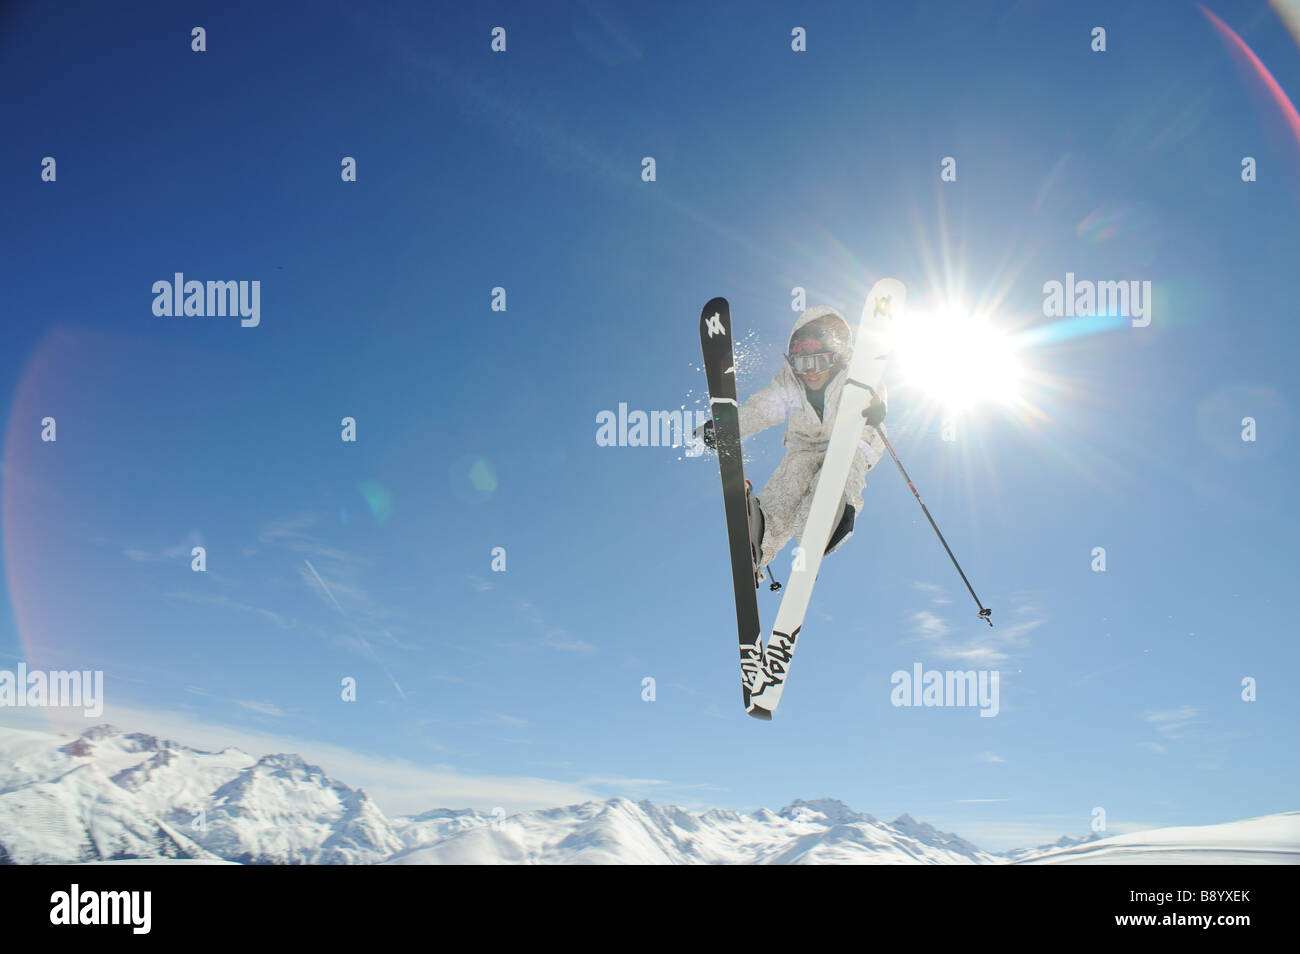 Freeskier performing a jump in the swiss alps - Stock Image